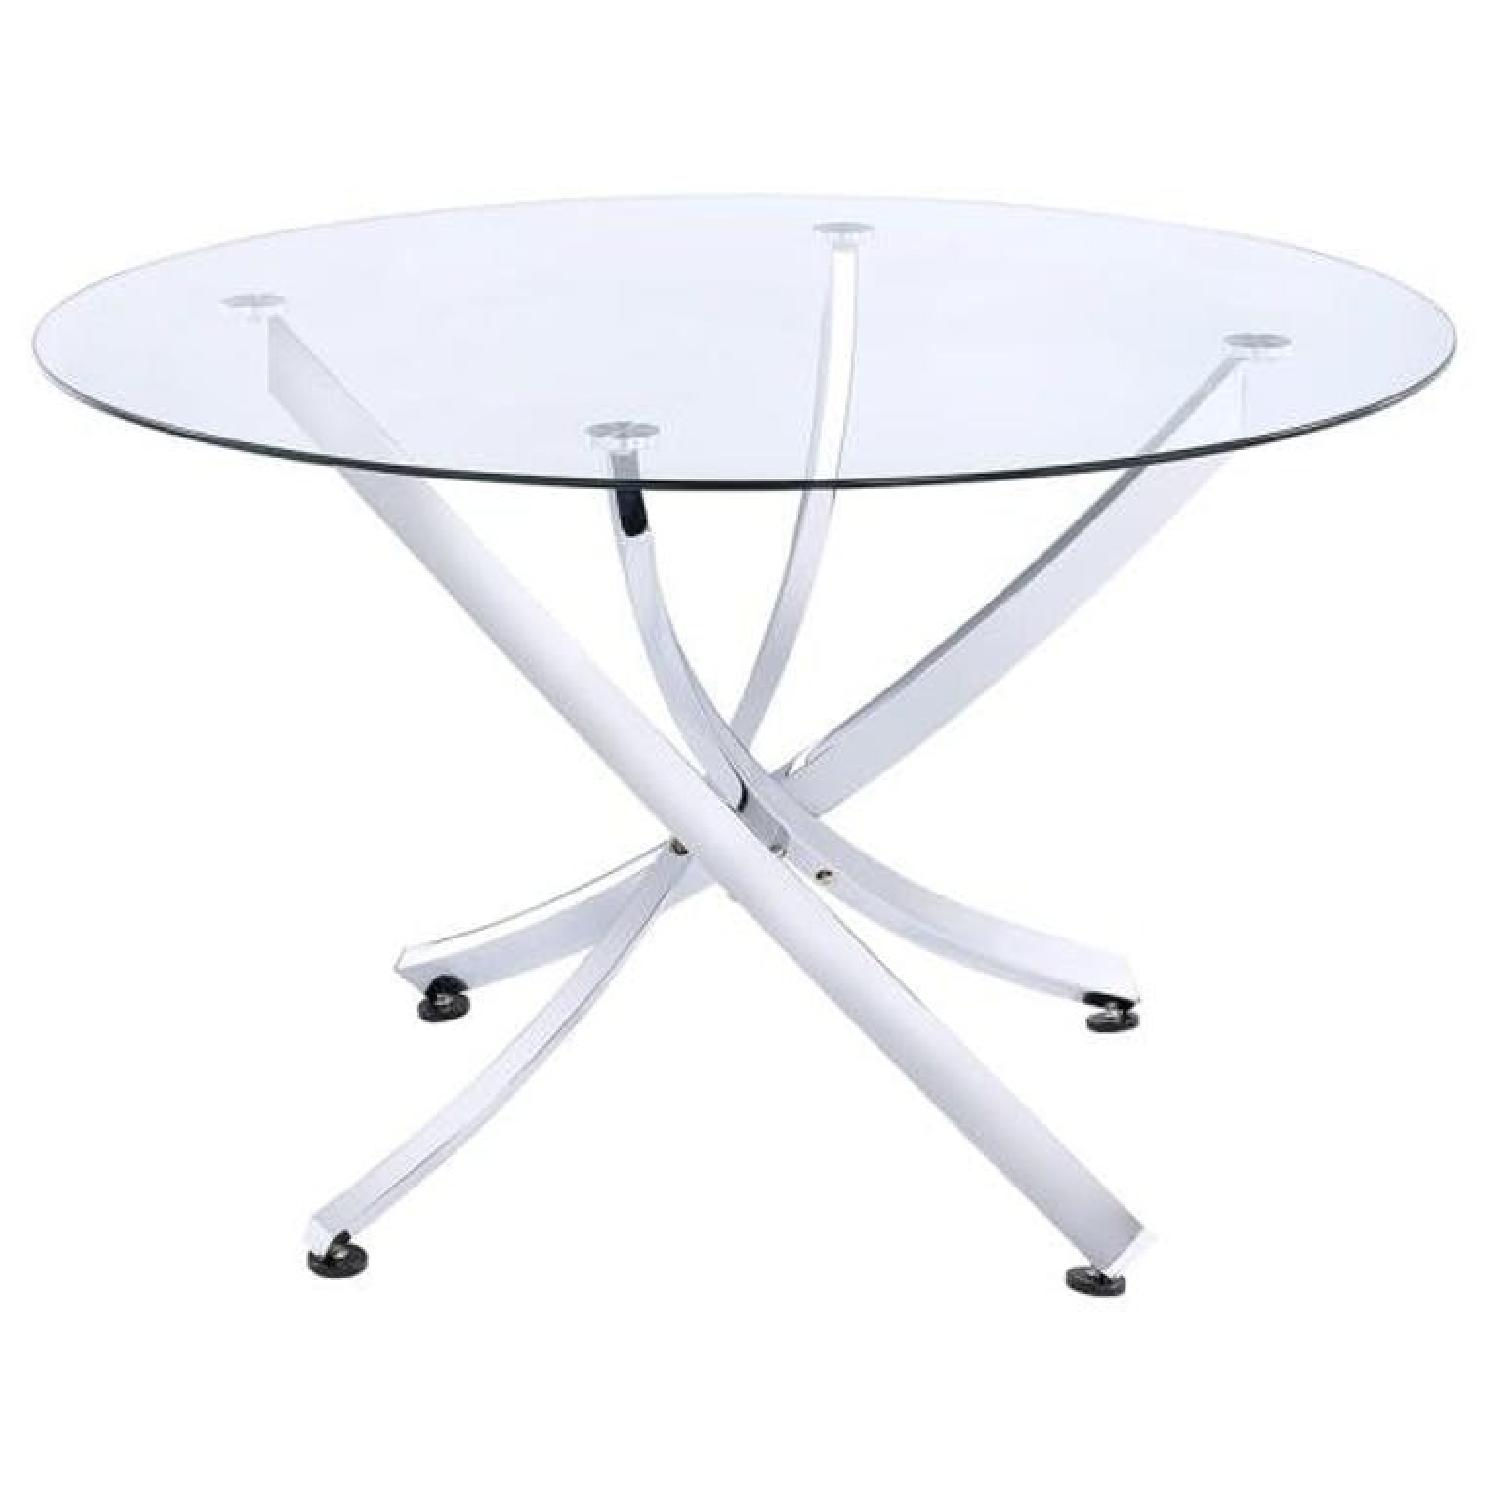 Dining Table w/ Puzzle Chrome Base & Round Glass Top